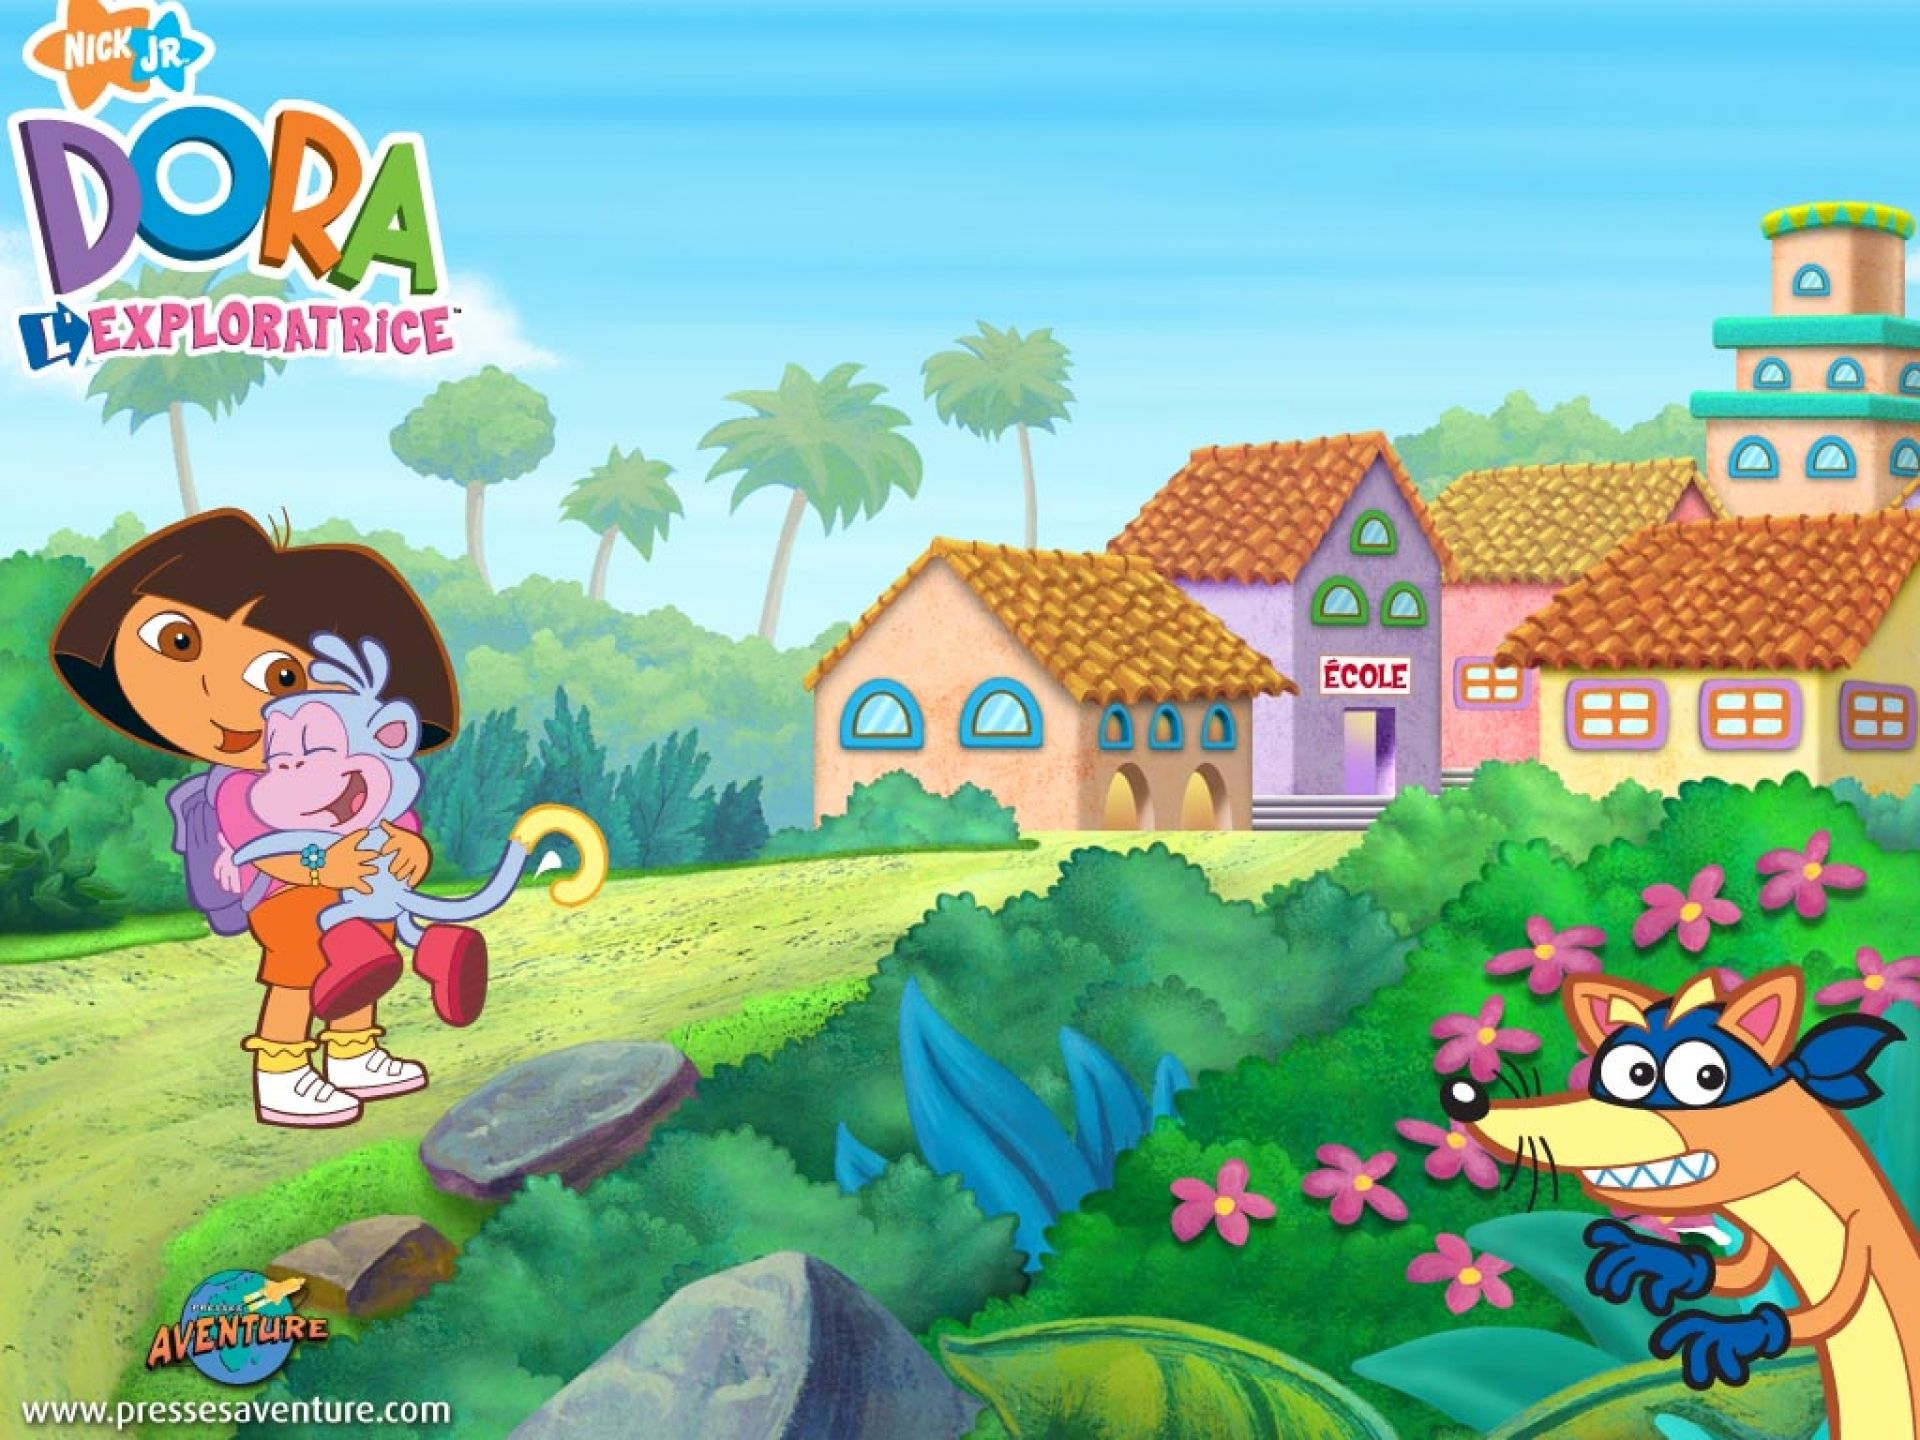 Dora wallpaper hd art wallpapers pinterest dora wallpaper hd voltagebd Image collections